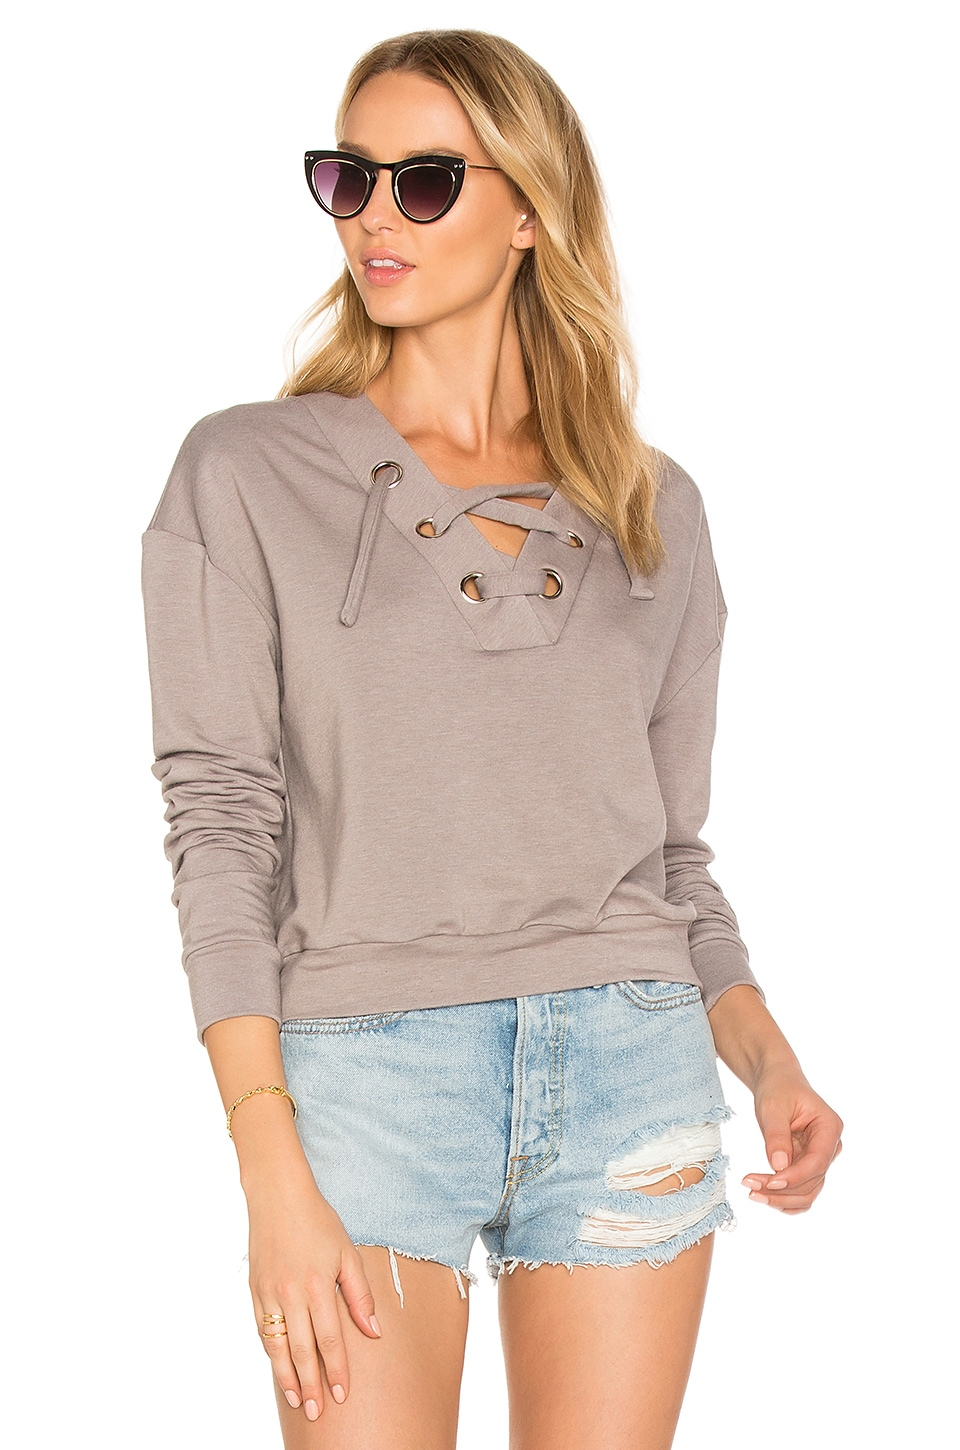 Superior Lace Up Sweater by Twenty